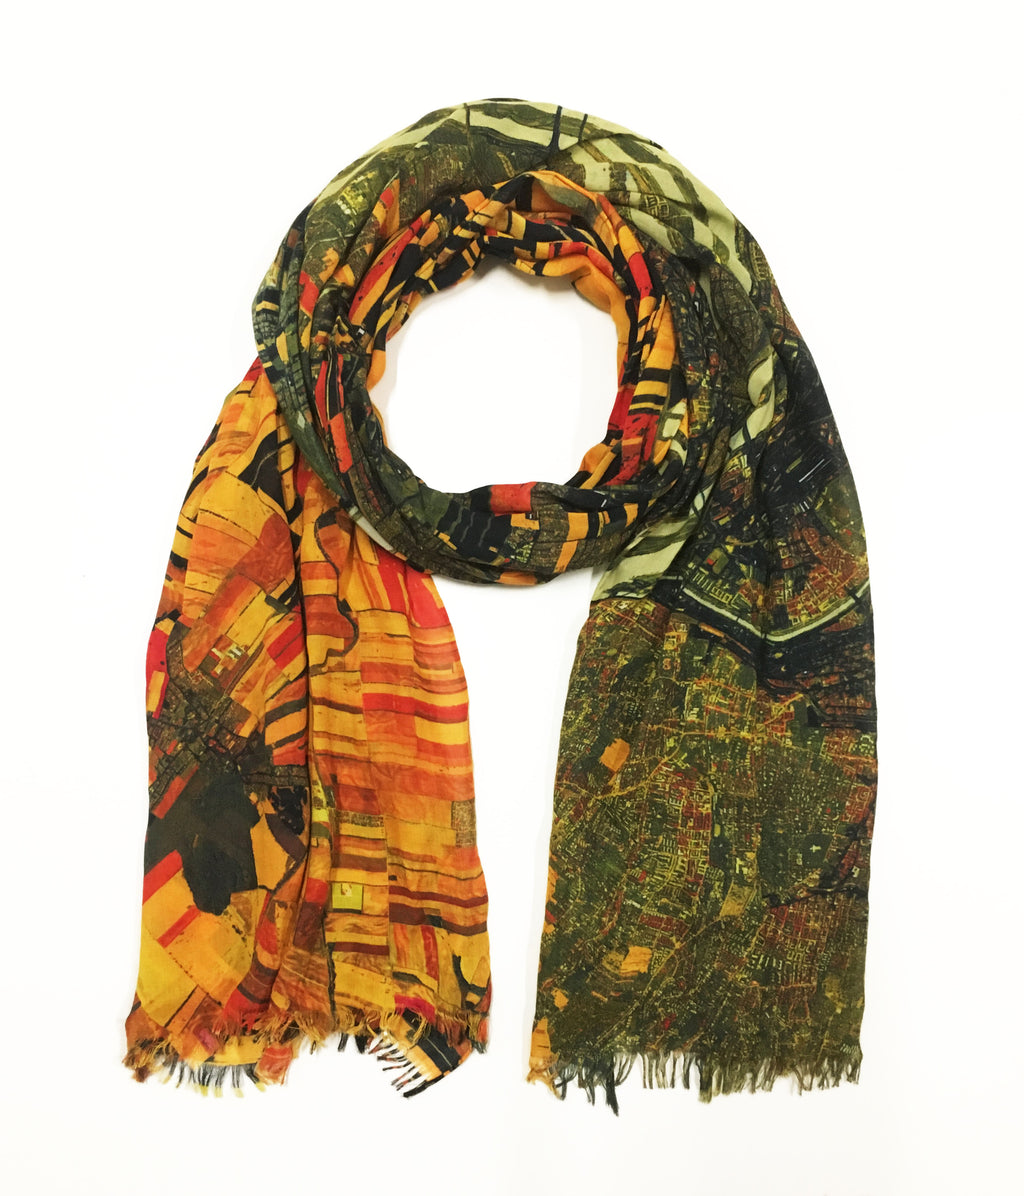 "Vienna, Austria map print scarf inspired by Gustav Klimt's ""The Kiss"". Perfect gift or souvenir for women and men."